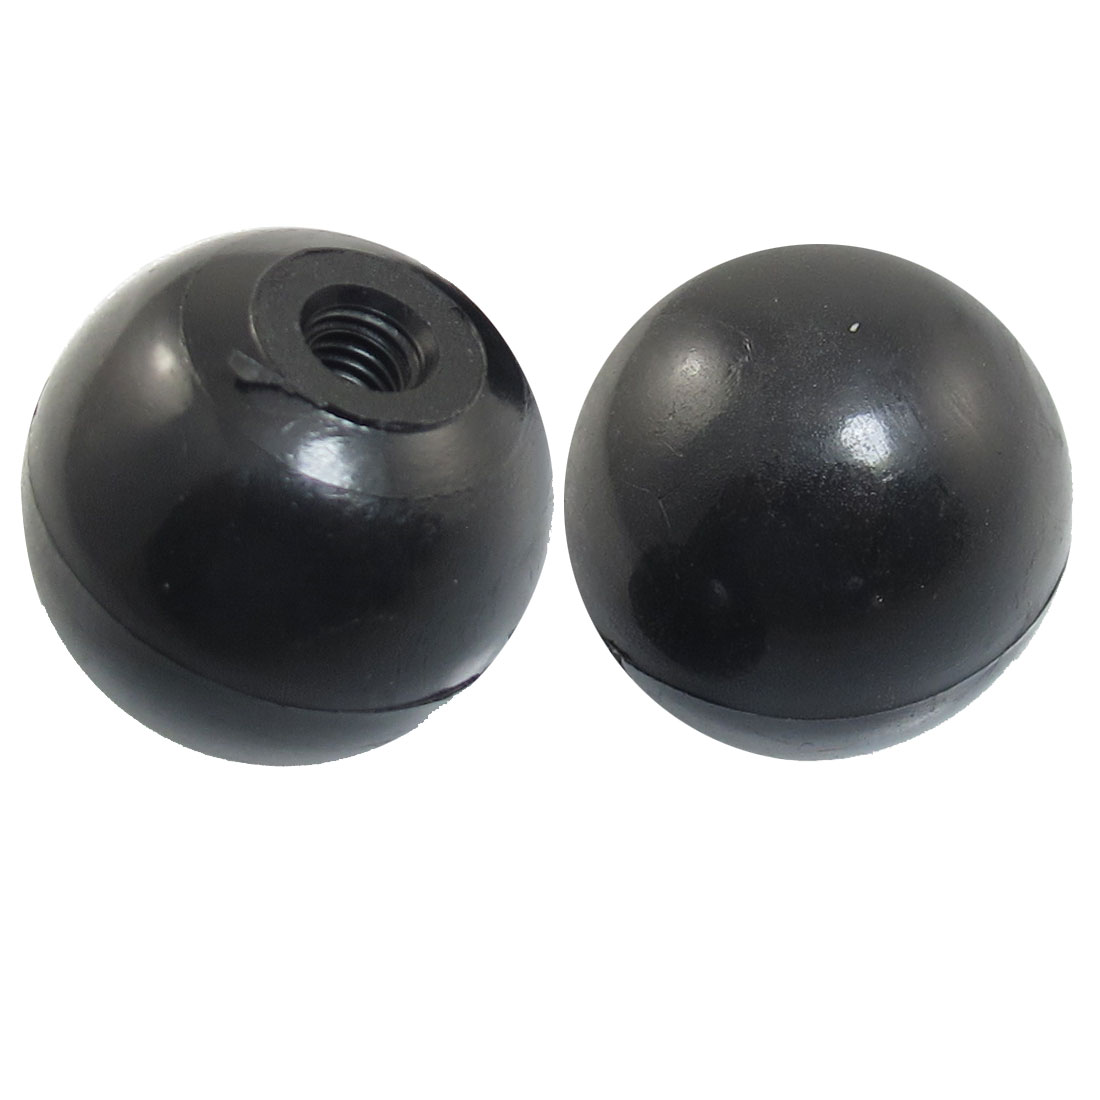 5mmx25mm Black Plastic 25mm Diameter Handgrip Ball Knob 2 Pcs